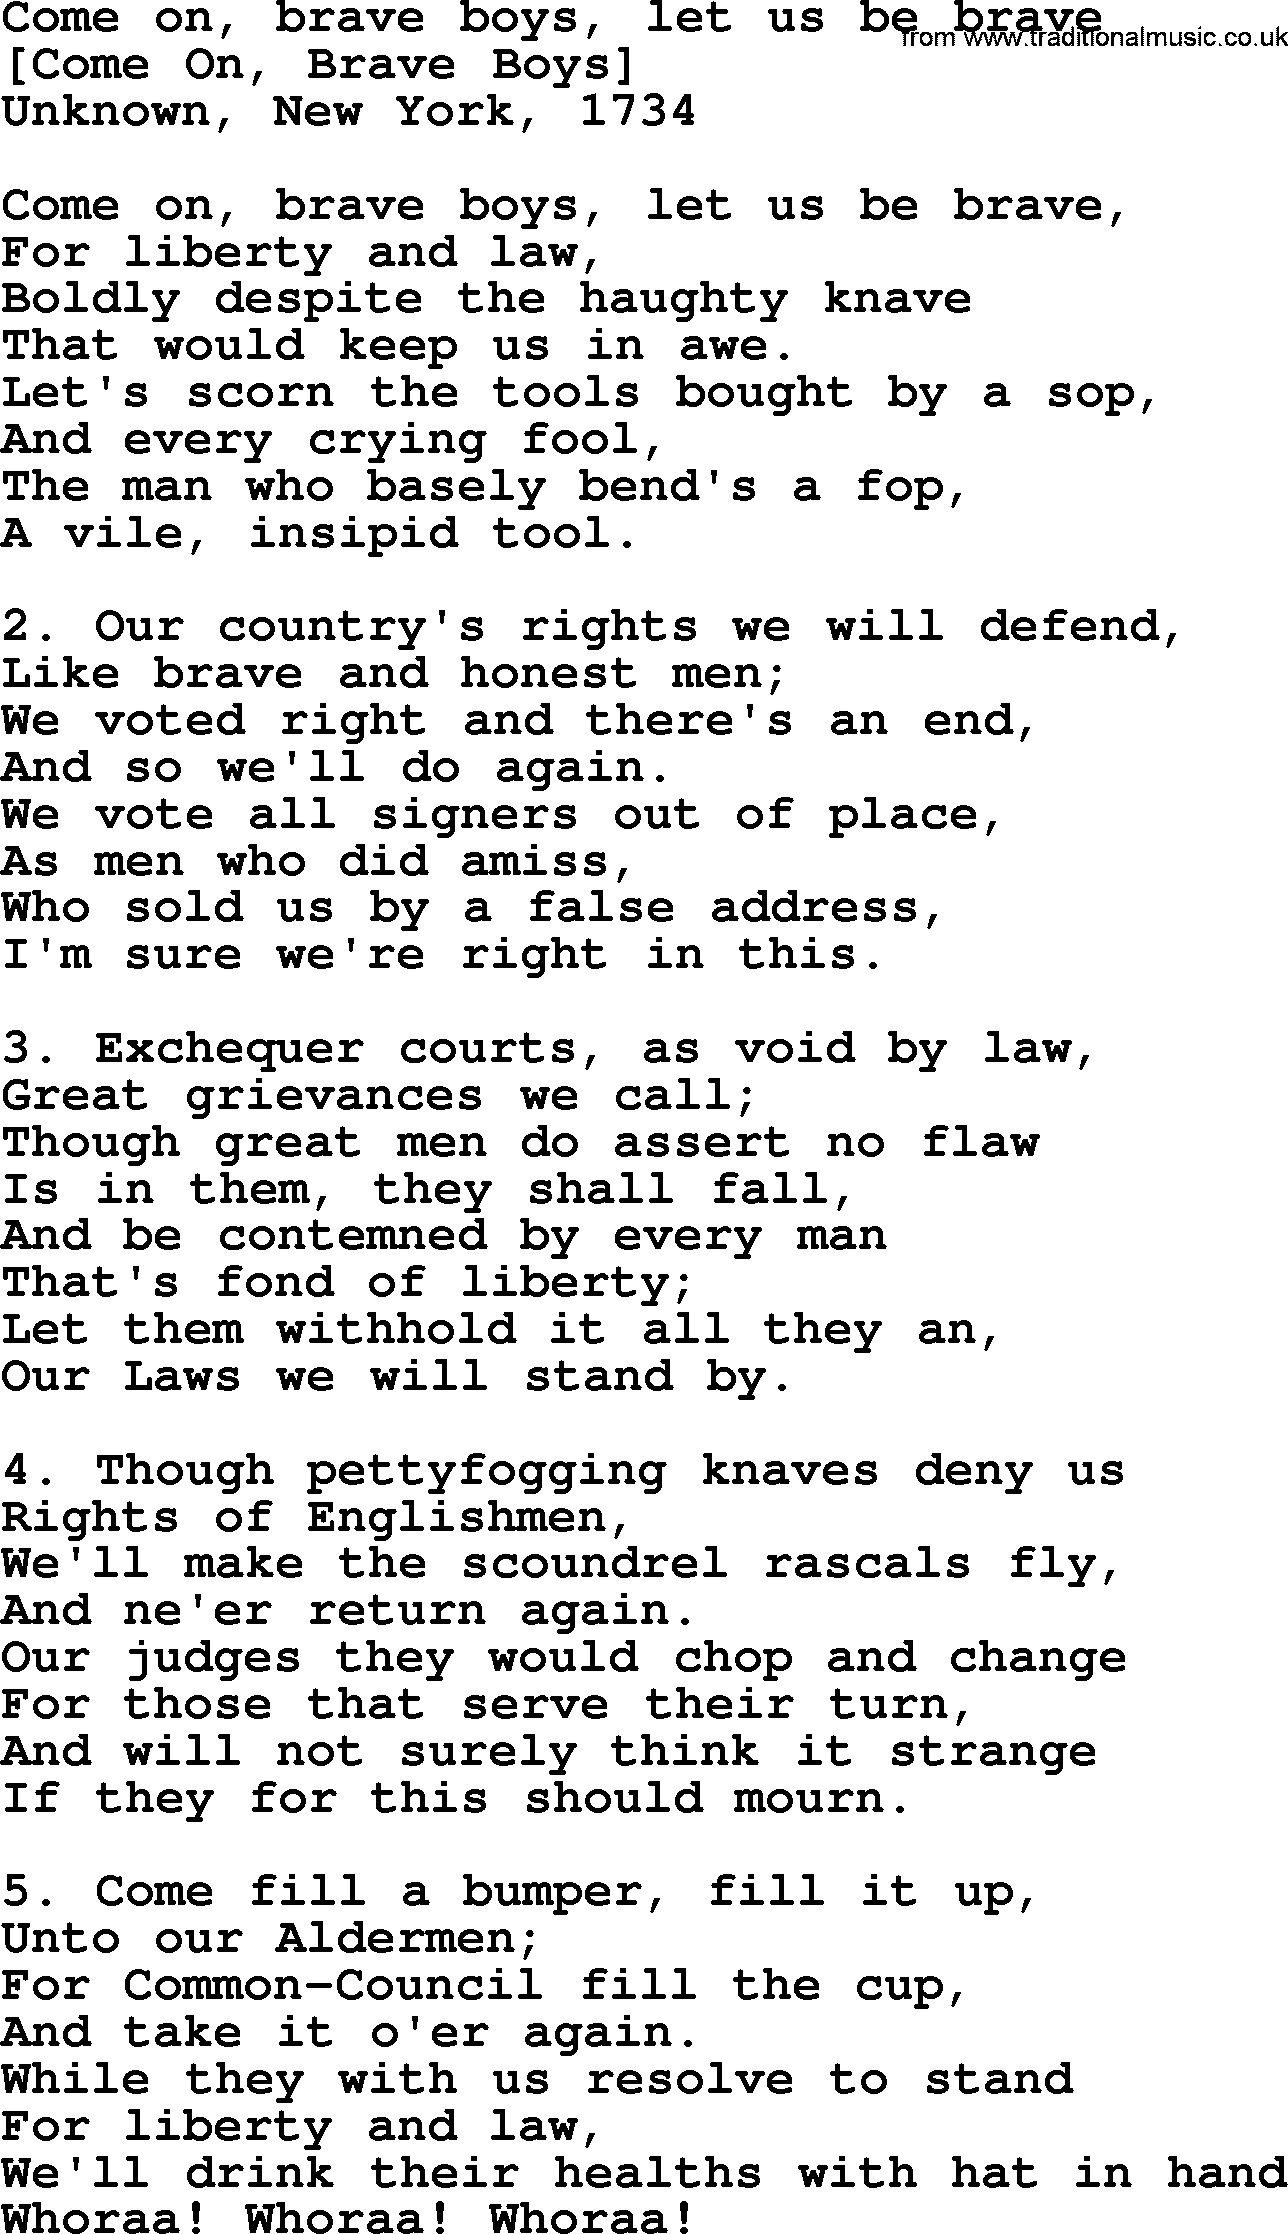 Old American Song - Lyrics for: Come On, Brave Boys, Let Us Be Brave